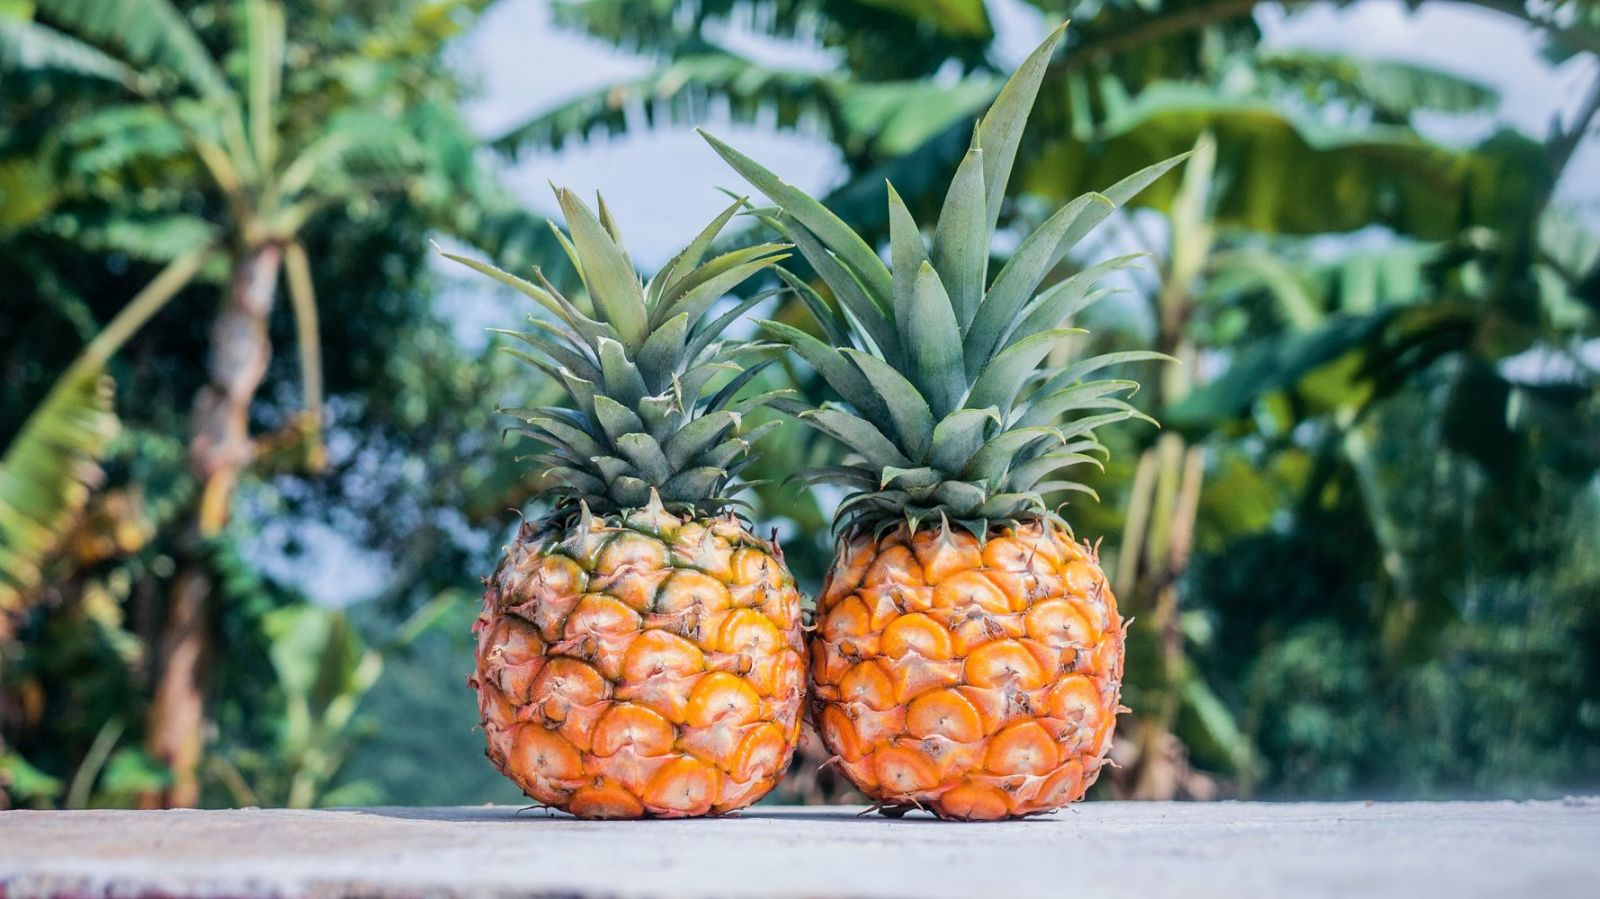 How Does A Pineapple or Two Help Pay Off The Mortgage